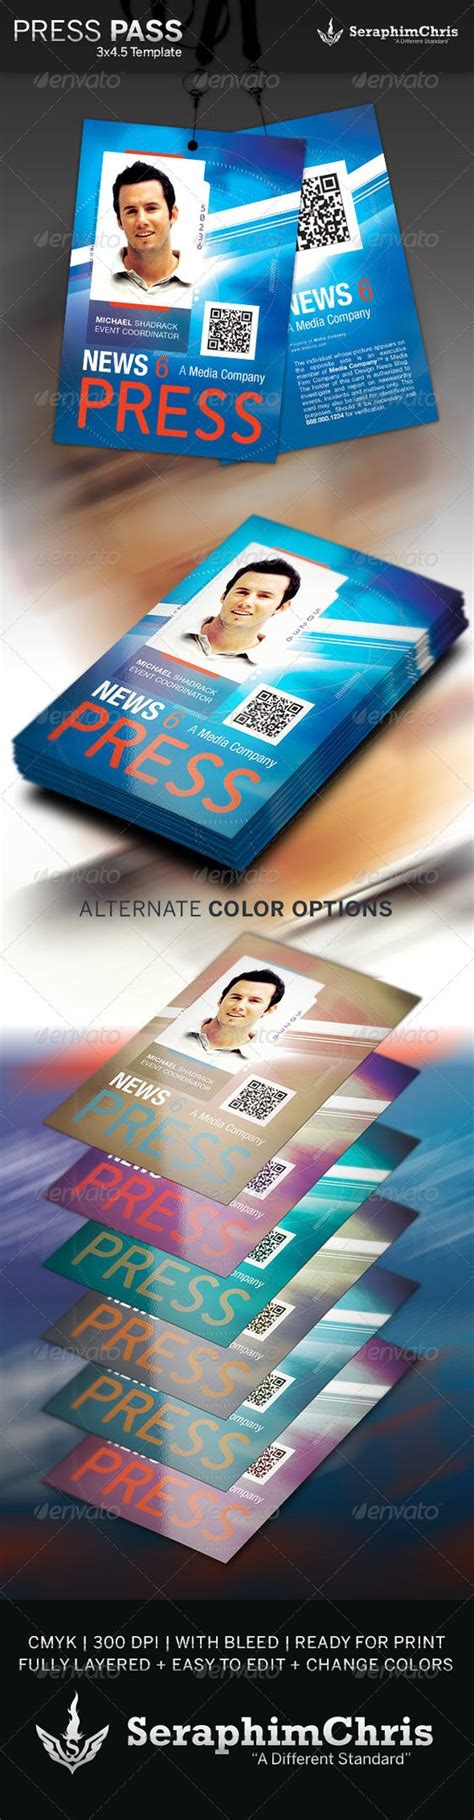 Press Pass Template 3 Colors Photoshop And Presentation Media Pass Template Photoshop